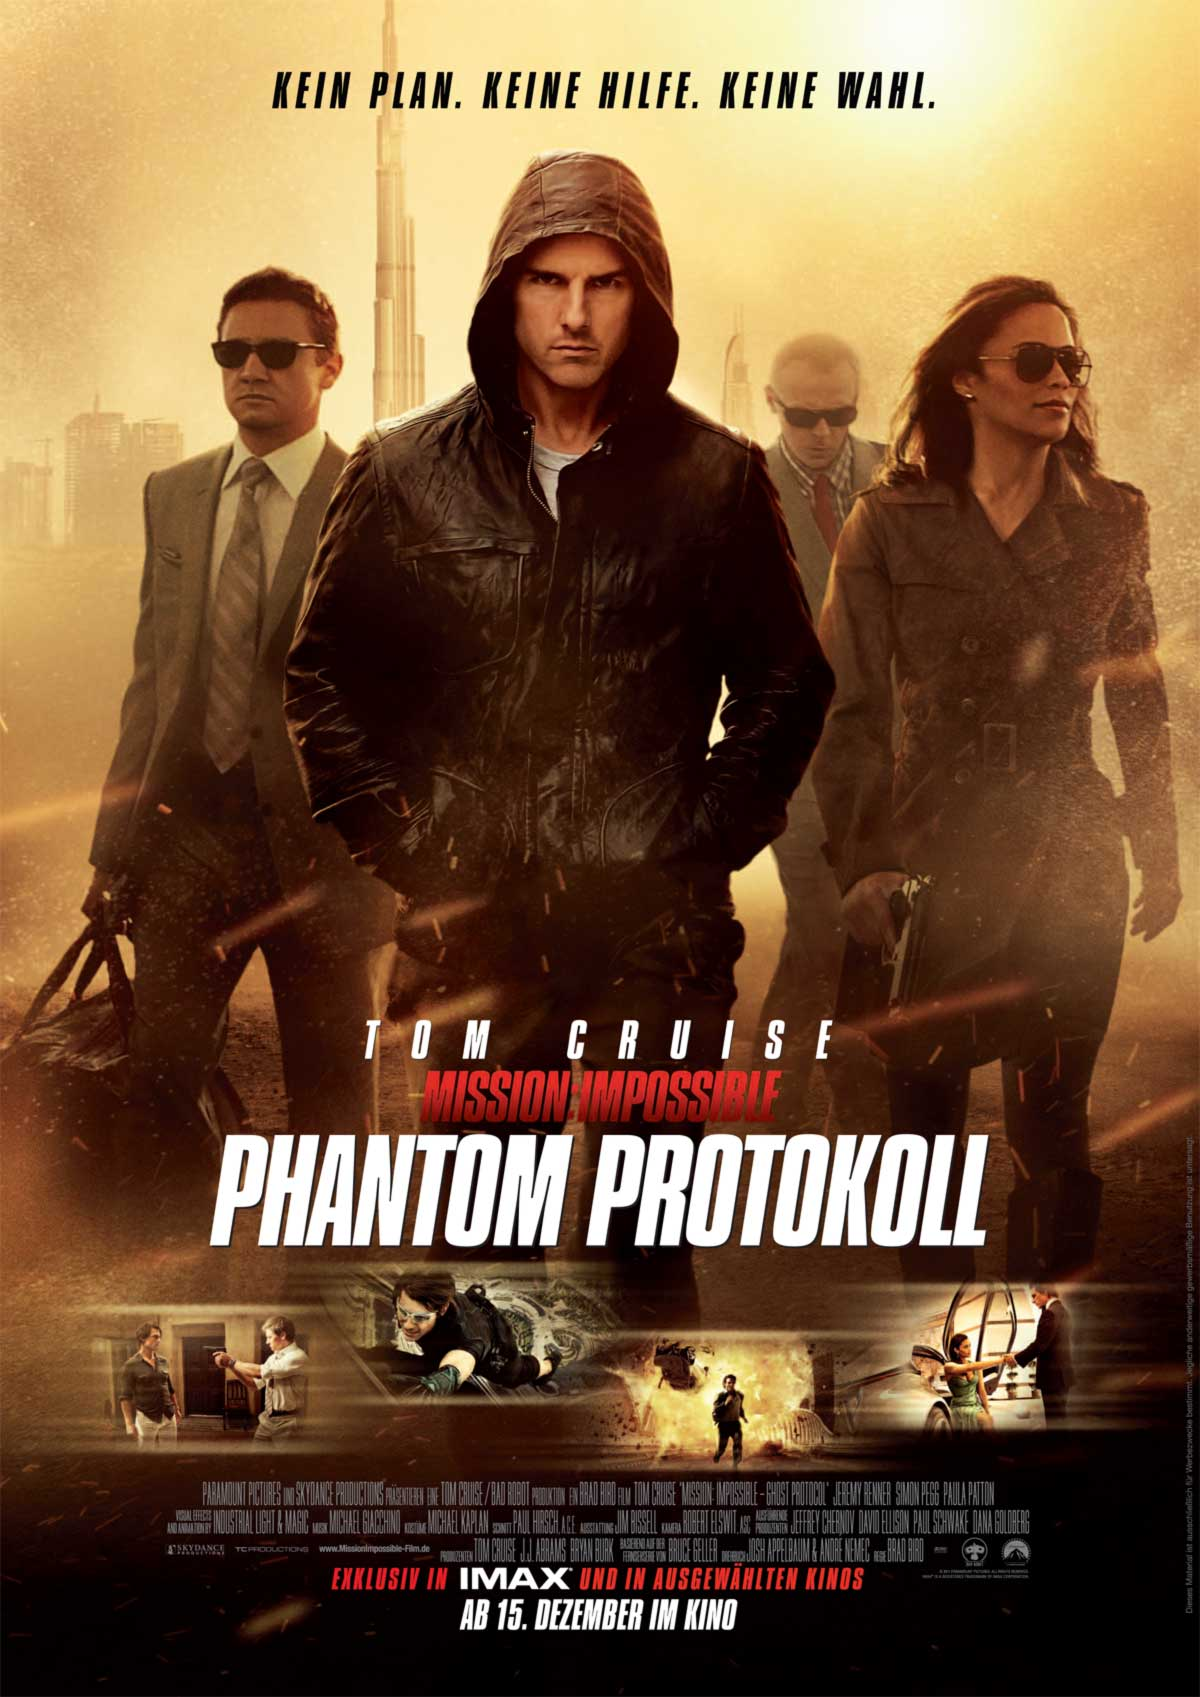 http://www.filmfreek.de/wp-content/uploads/2011/11/Mission-Impossible-Phantom-Protokoll.jpg